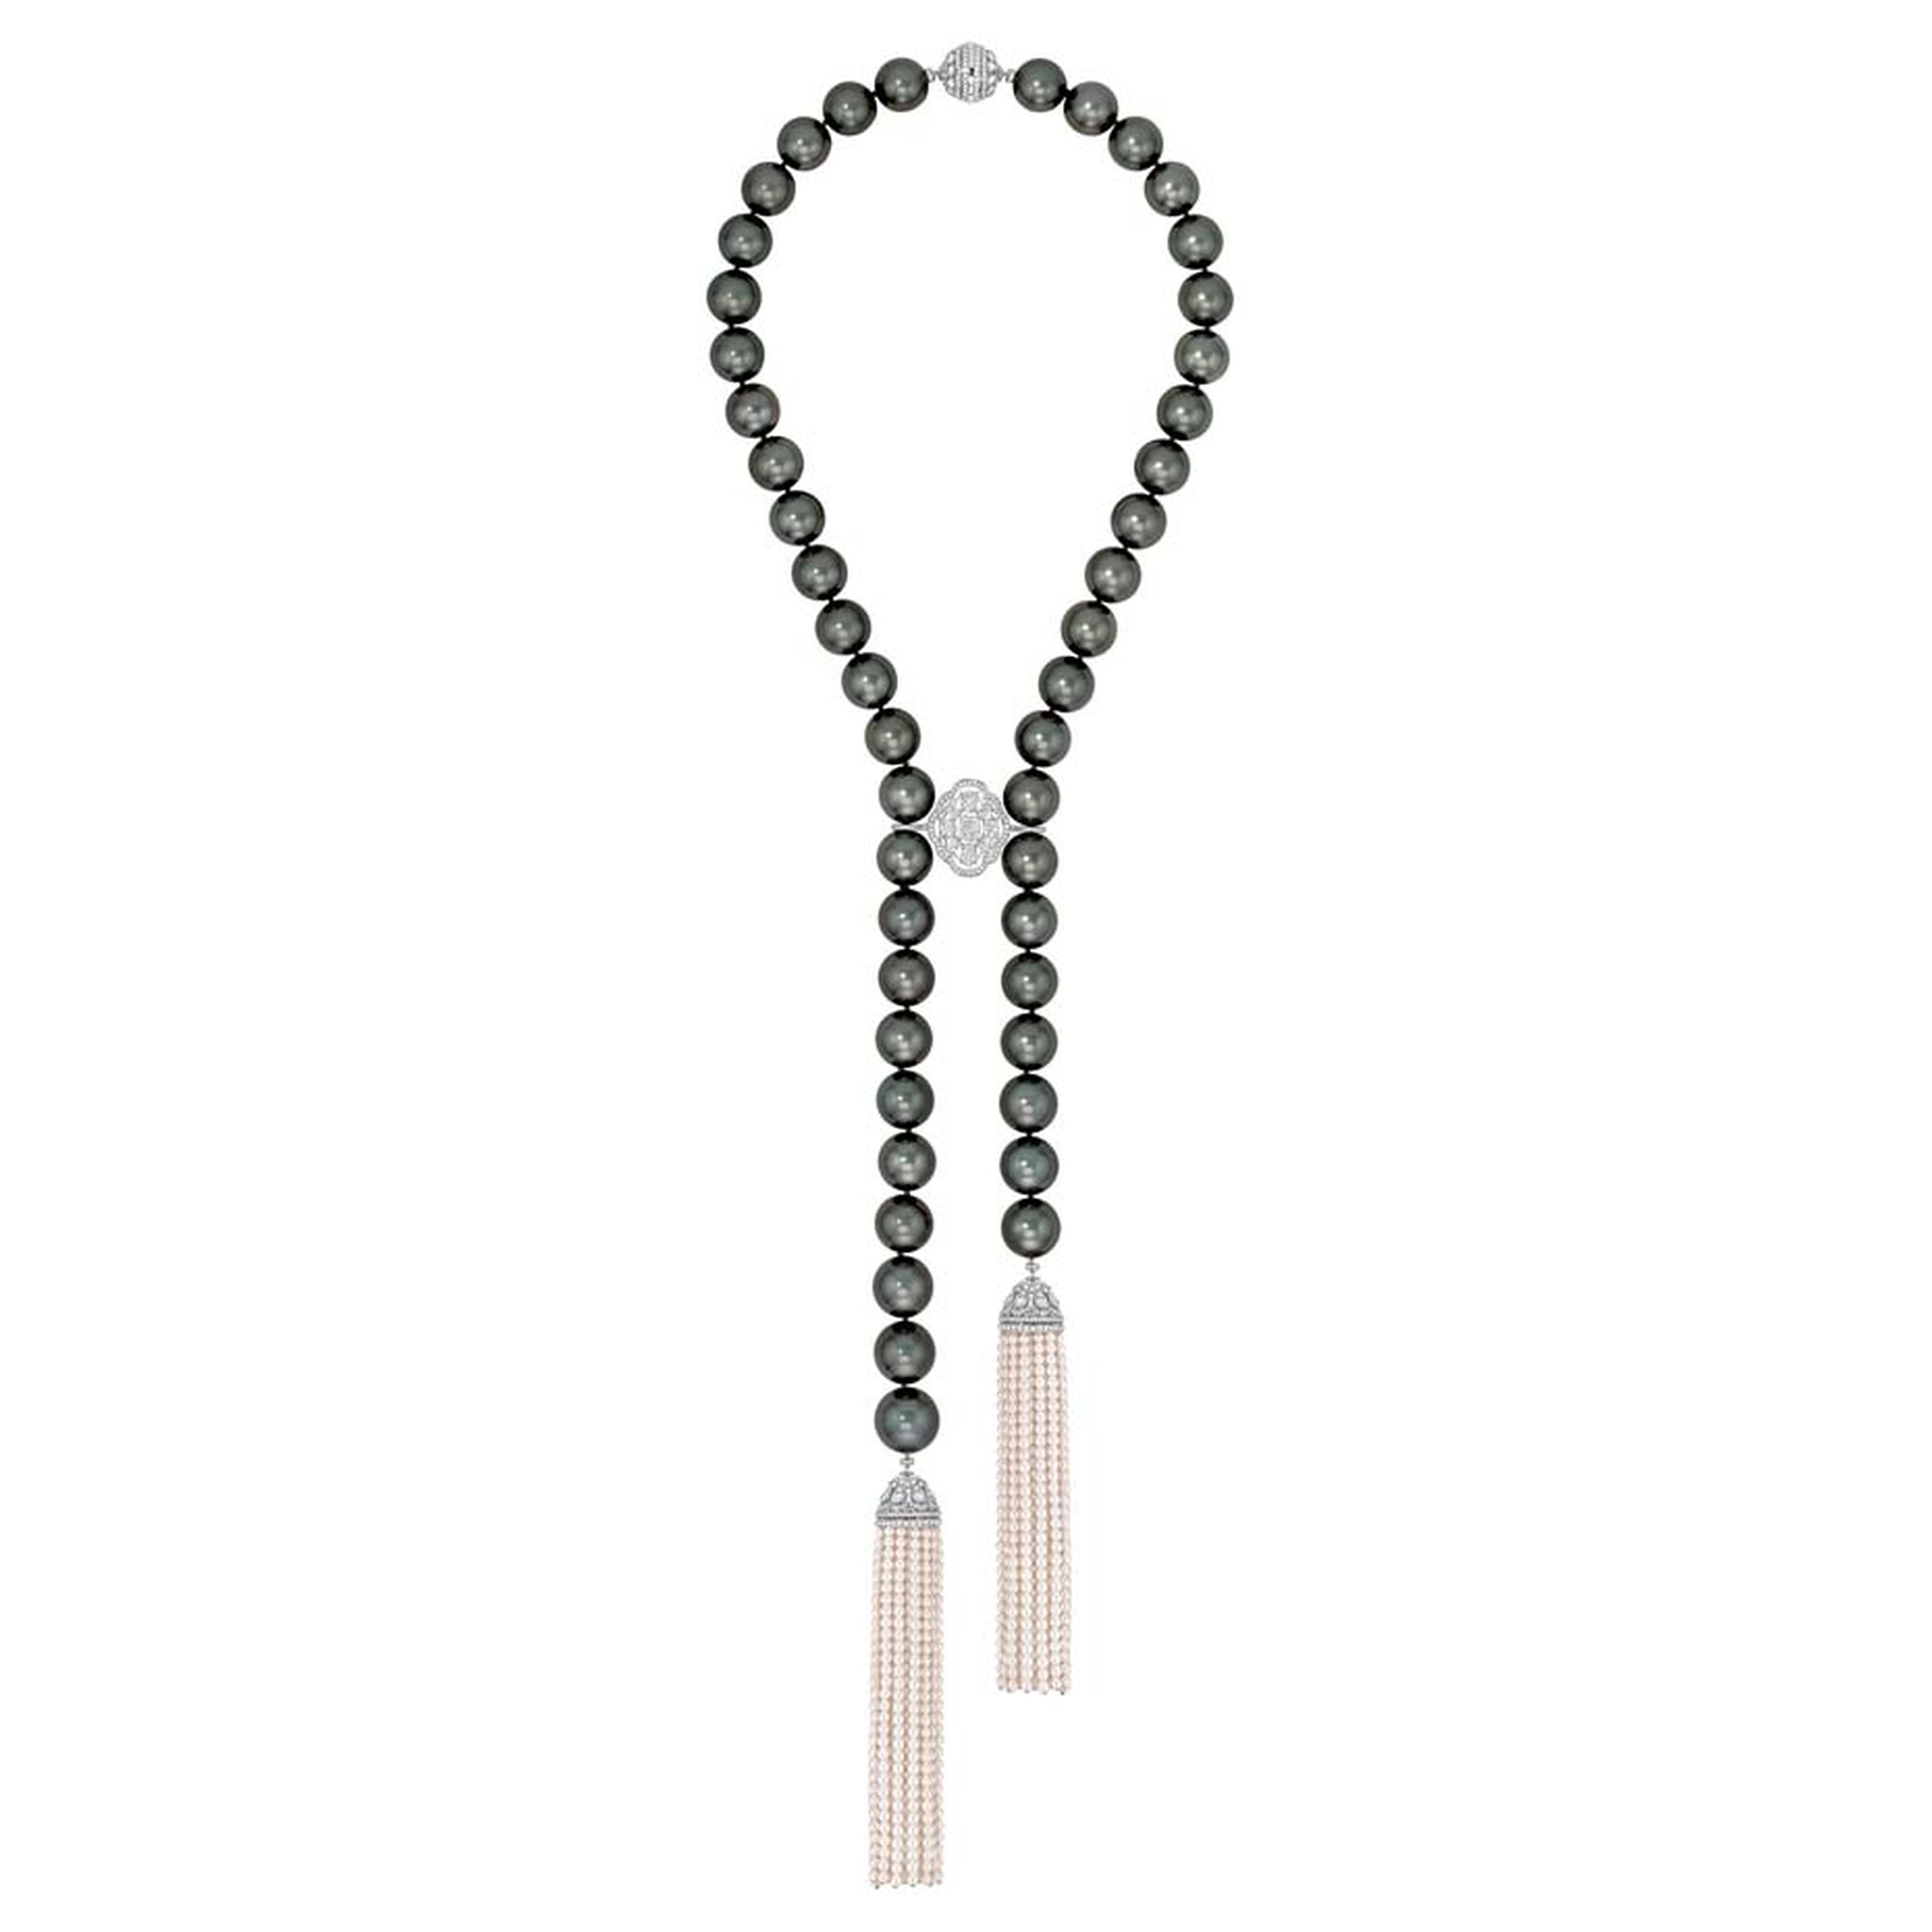 Chanel Perles de Nuit necklace, from the new Les Perles de Chanel collection